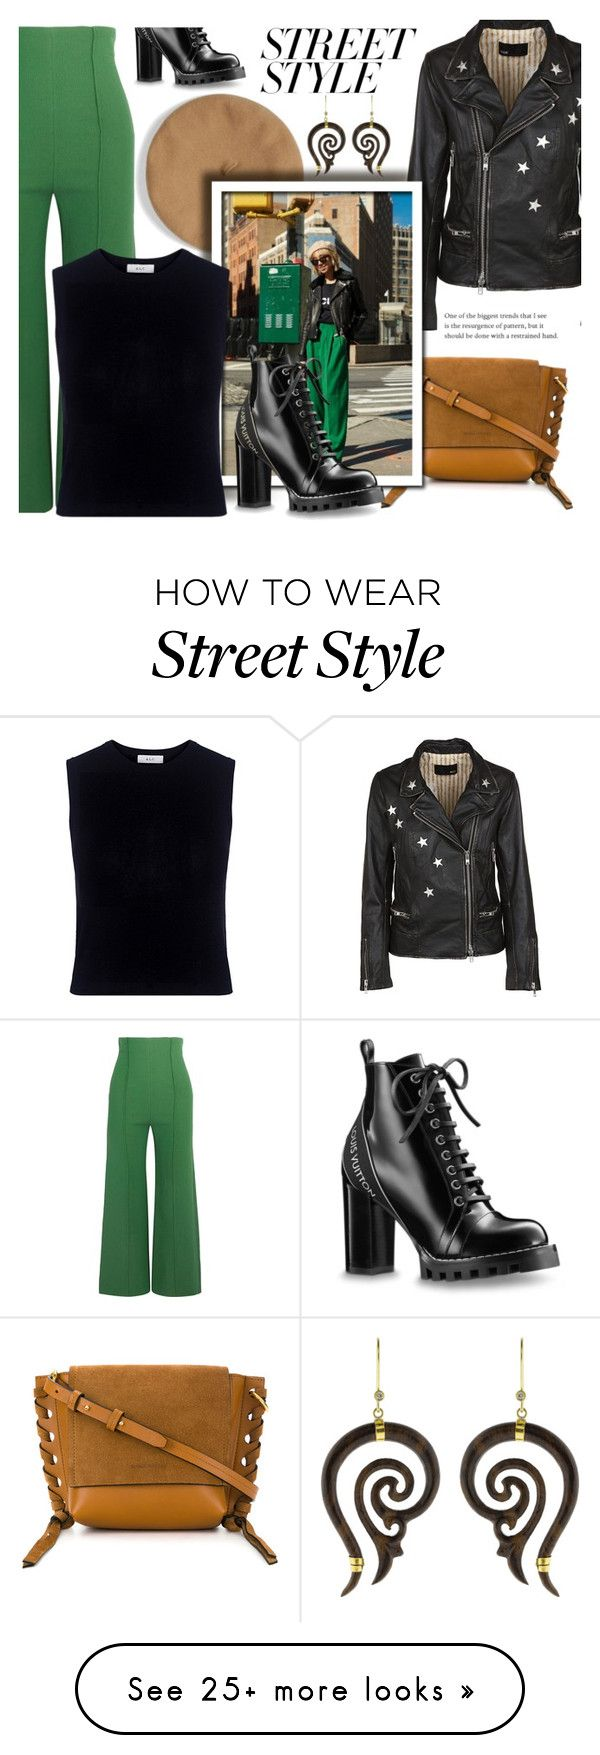 """Sexy Street"" by carleen1978 on Polyvore featuring Emilia Wickstead, Étoile Isabel Marant, Bully, Mother of Pearl and Boaz Kashi"